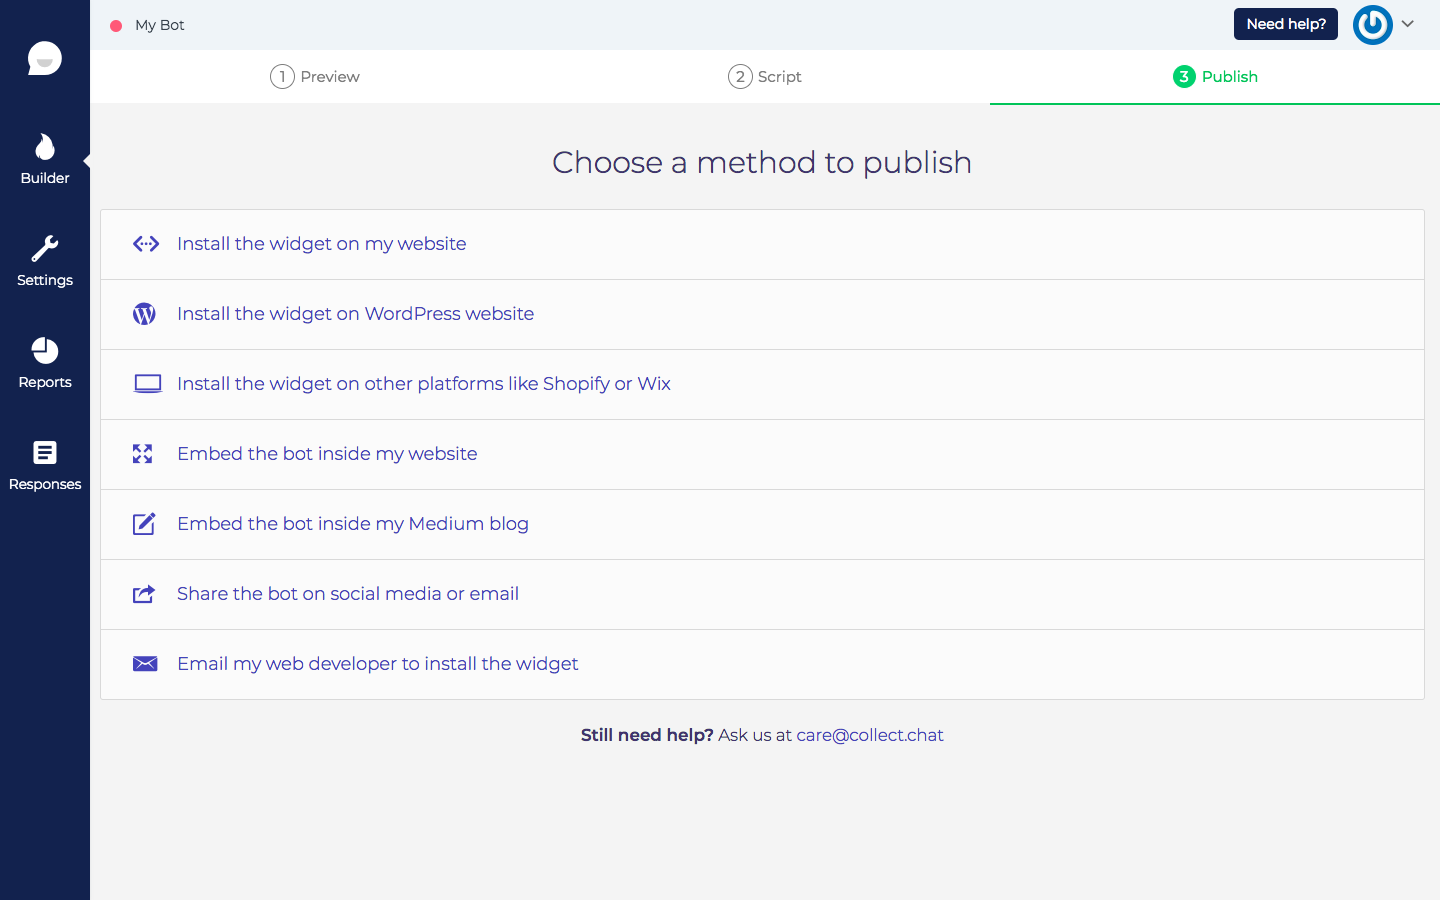 Collect.chat Demo - Publish Page